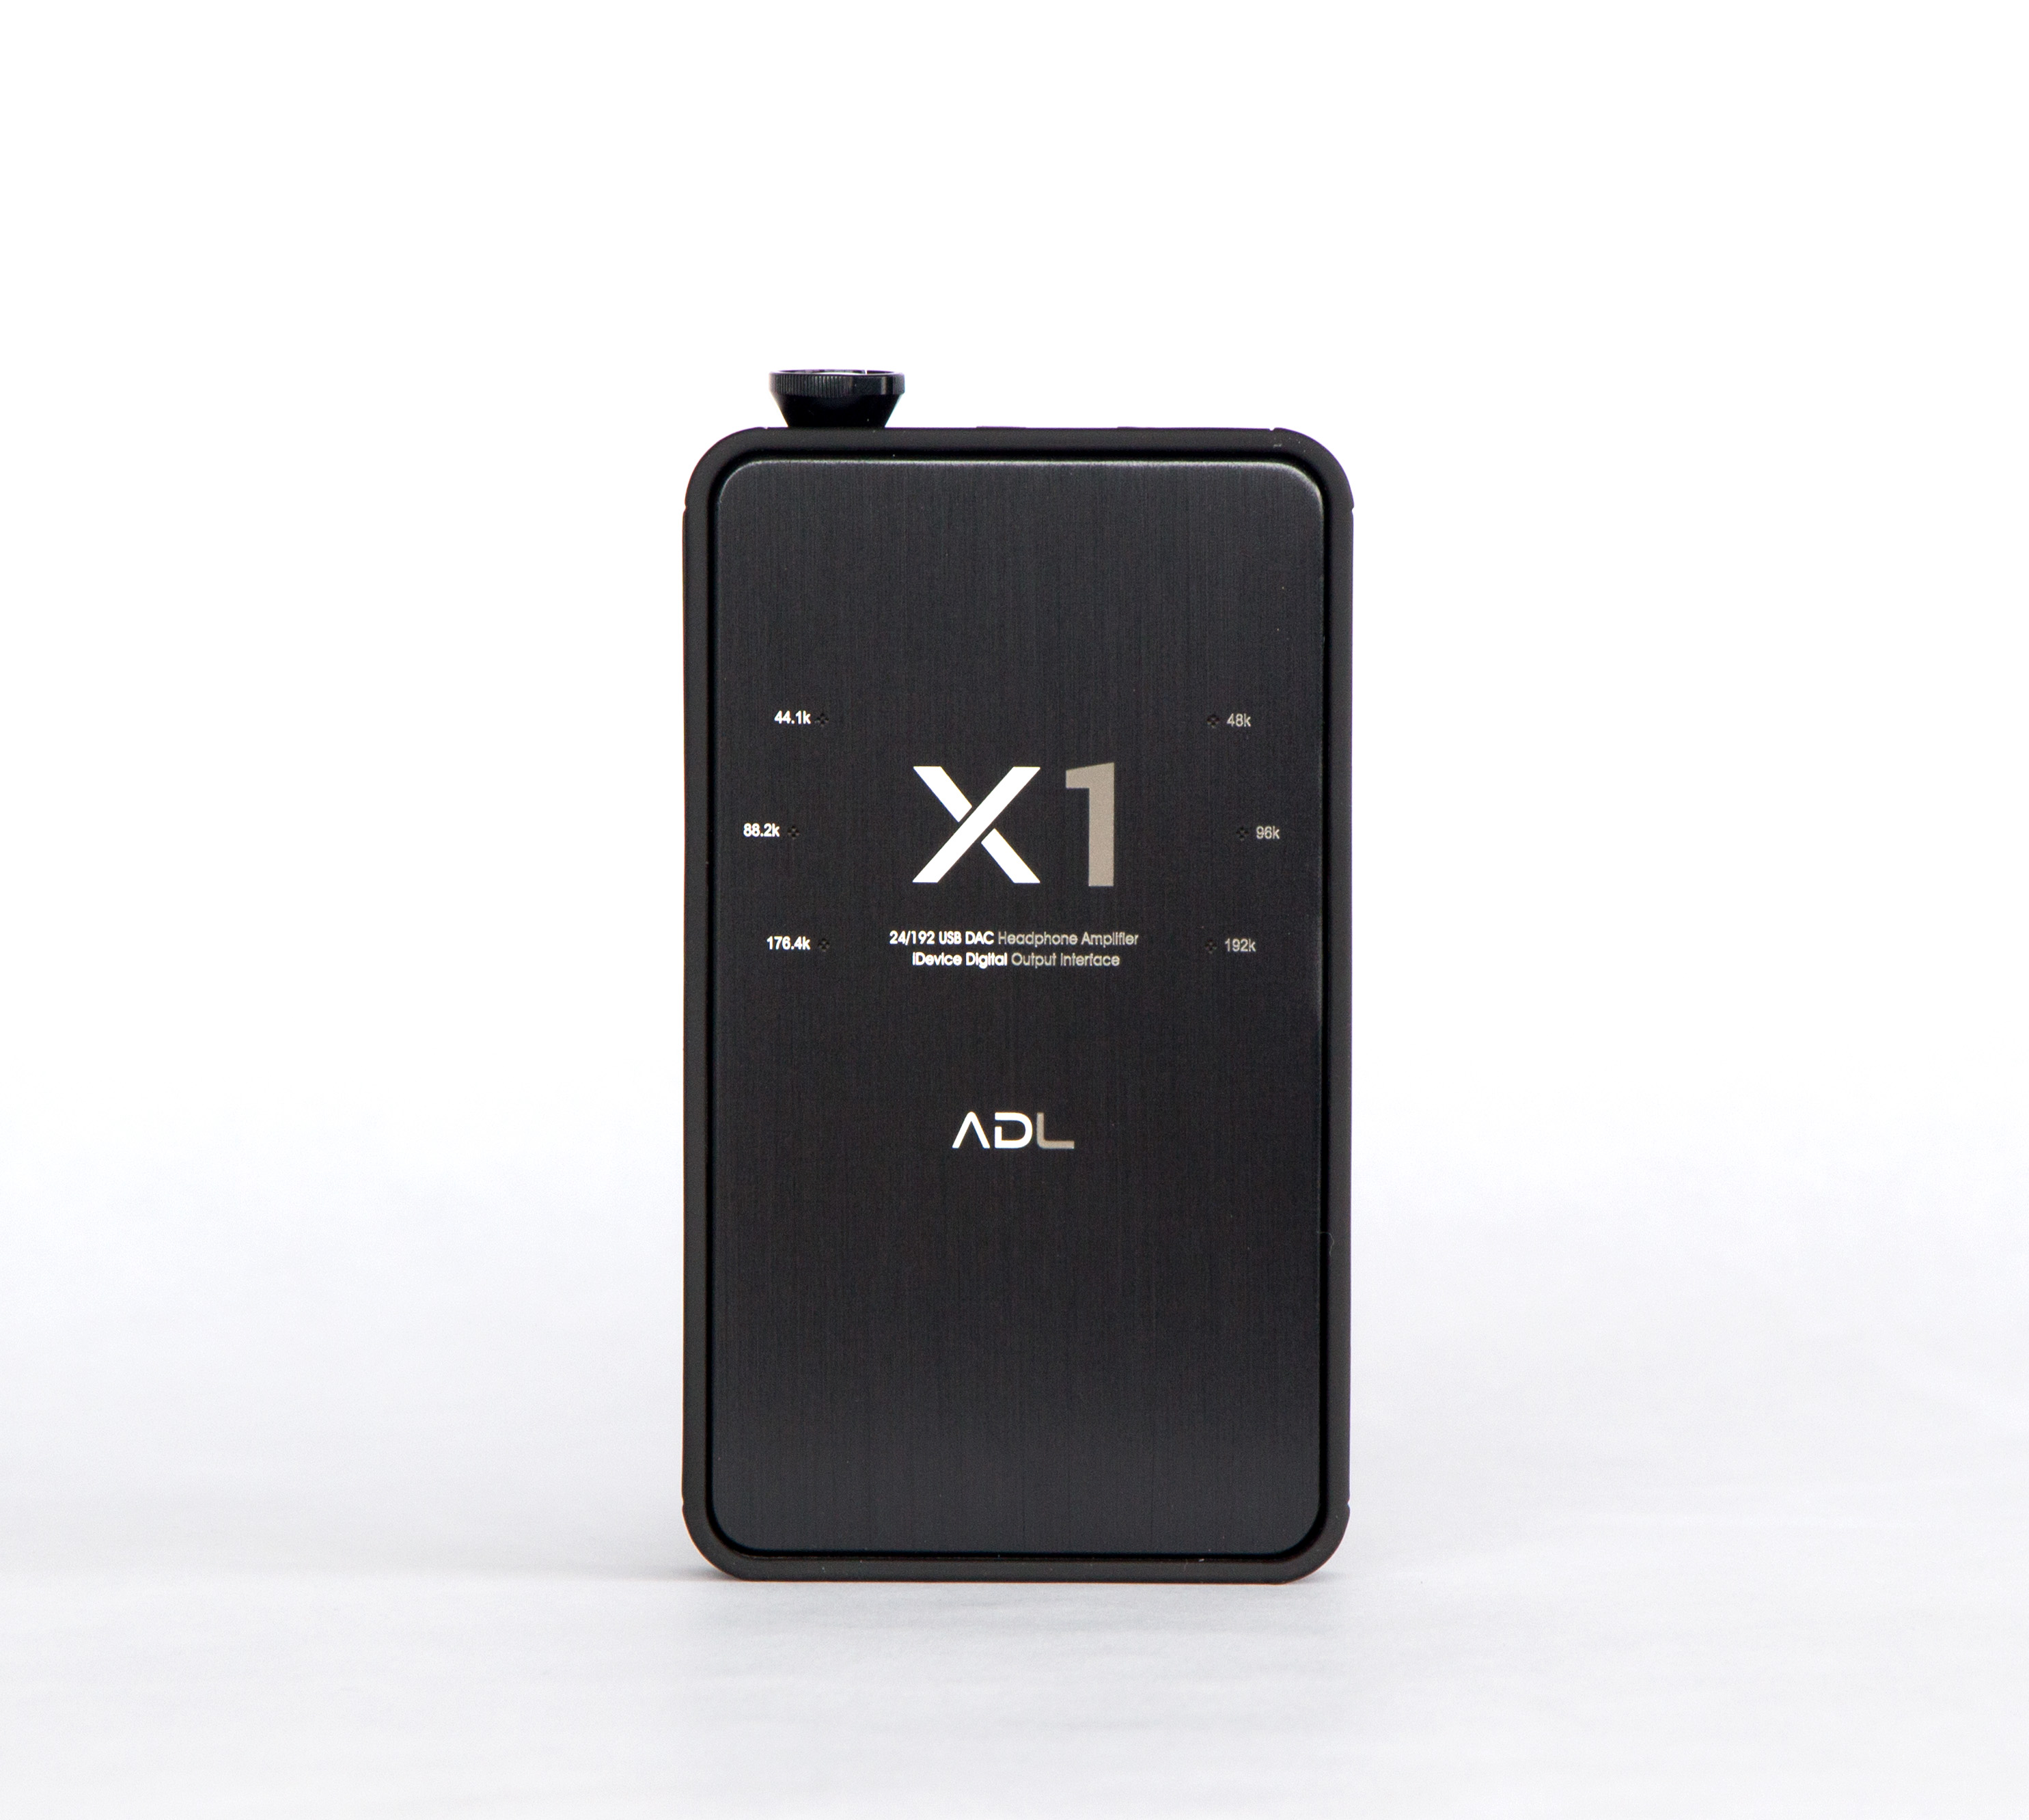 X1 Portable Headphone Amplifier By Adl Review Best Amp Circuit Anyone Who Frequents This Site Knows That There Is No Shortage Of Dac And Components Entering The Space